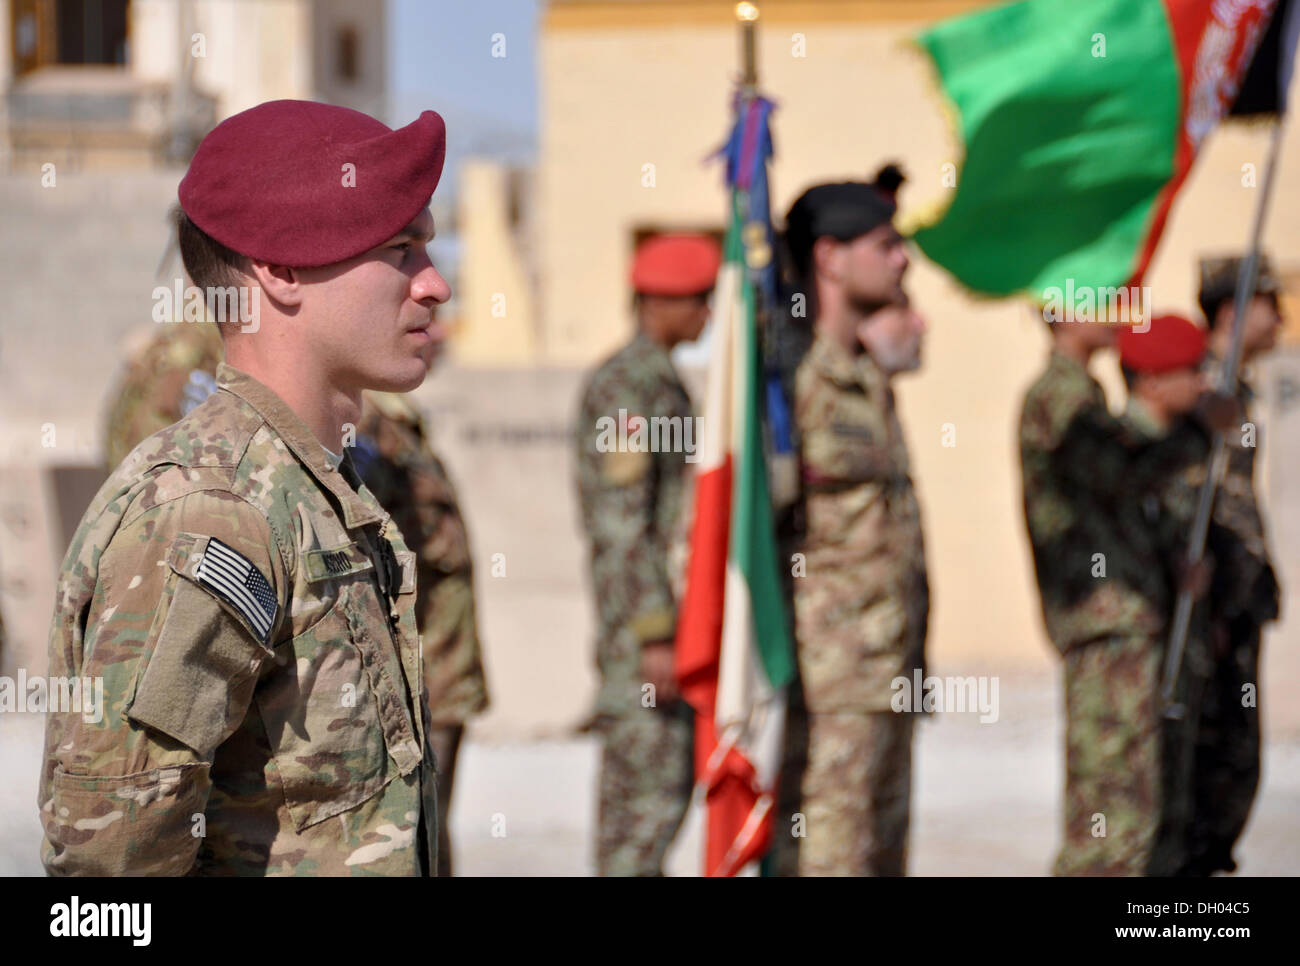 A US soldier stands at attention during a base transfer ceremony handing over Forward Operating Base Farah to the Afghan Army. - Stock Image